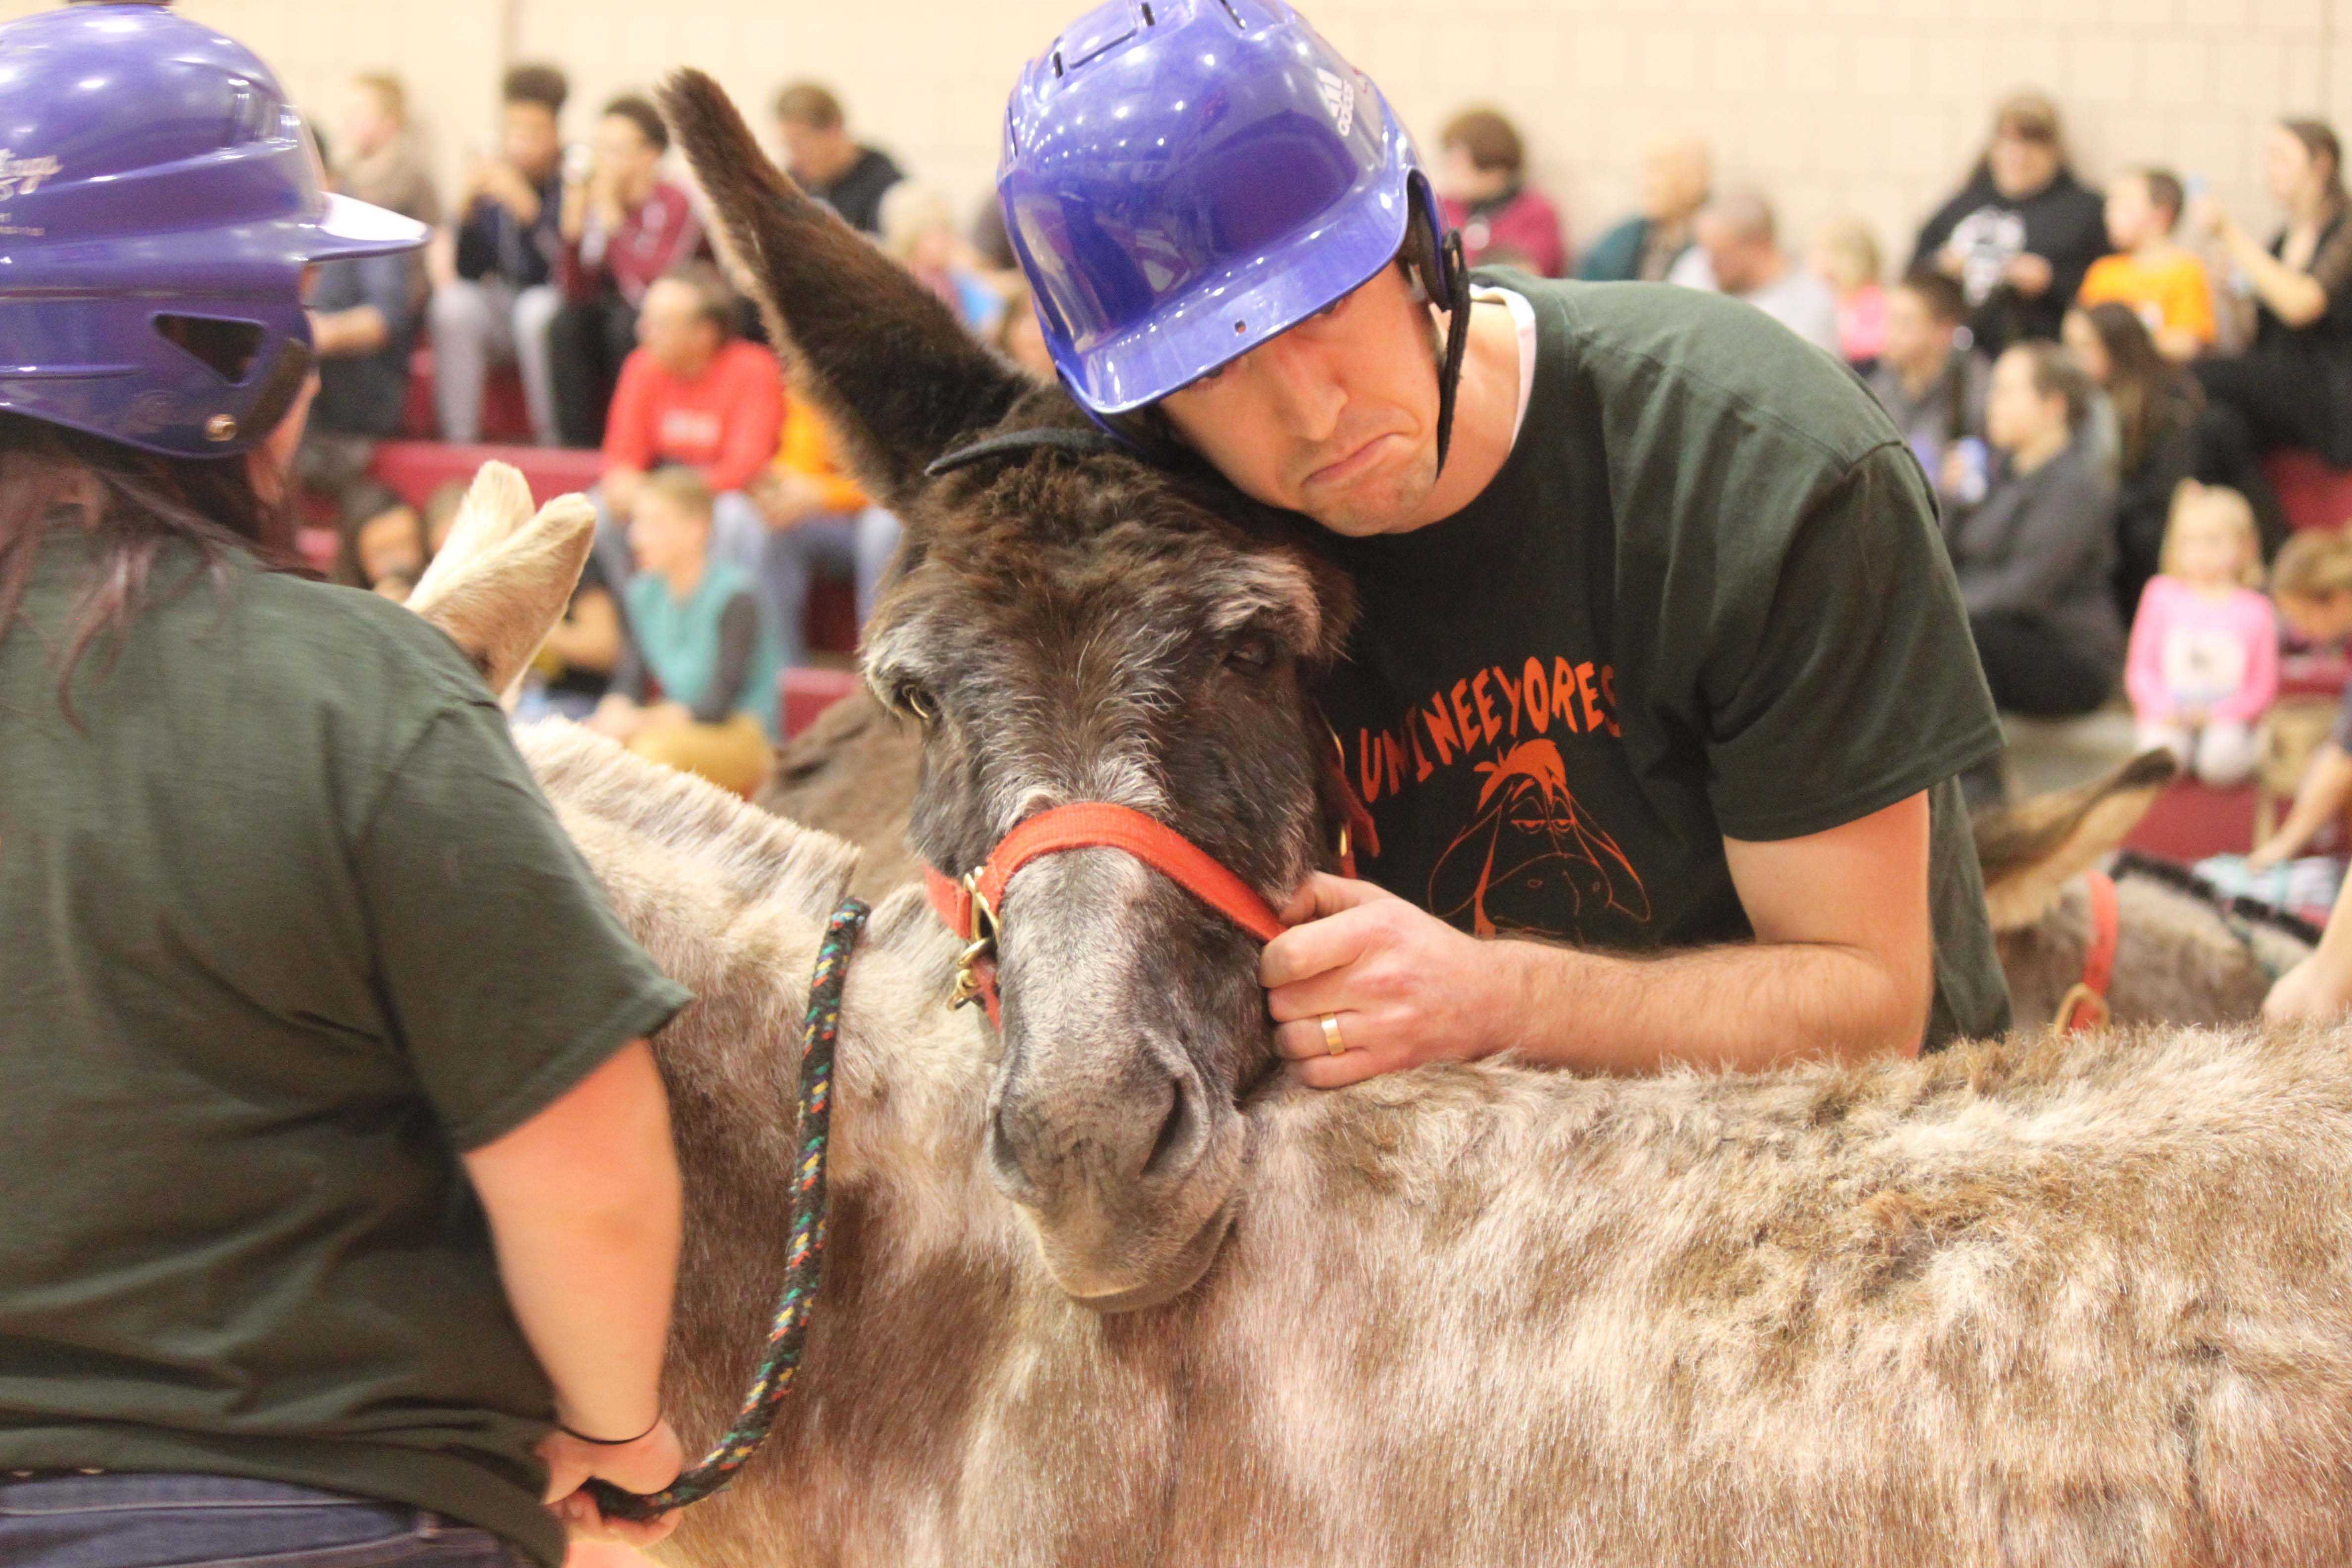 High school teacher Nate Langelli consoles his donkey after its resistance to play the game on Feb. 27 in the high school gymnasium.